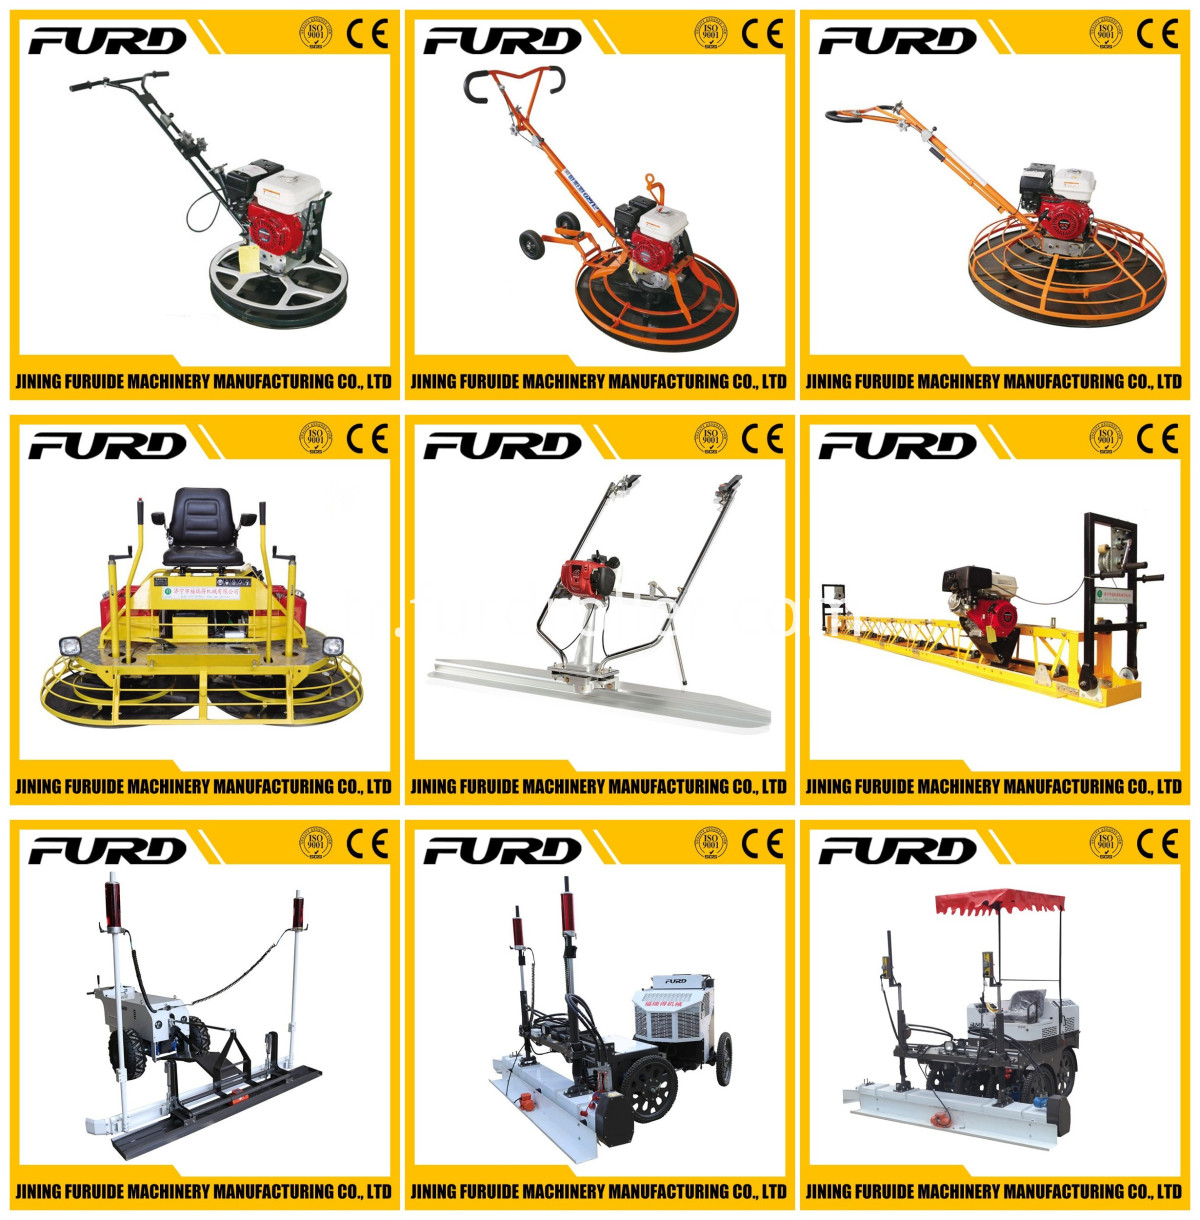 FURD concrete machines